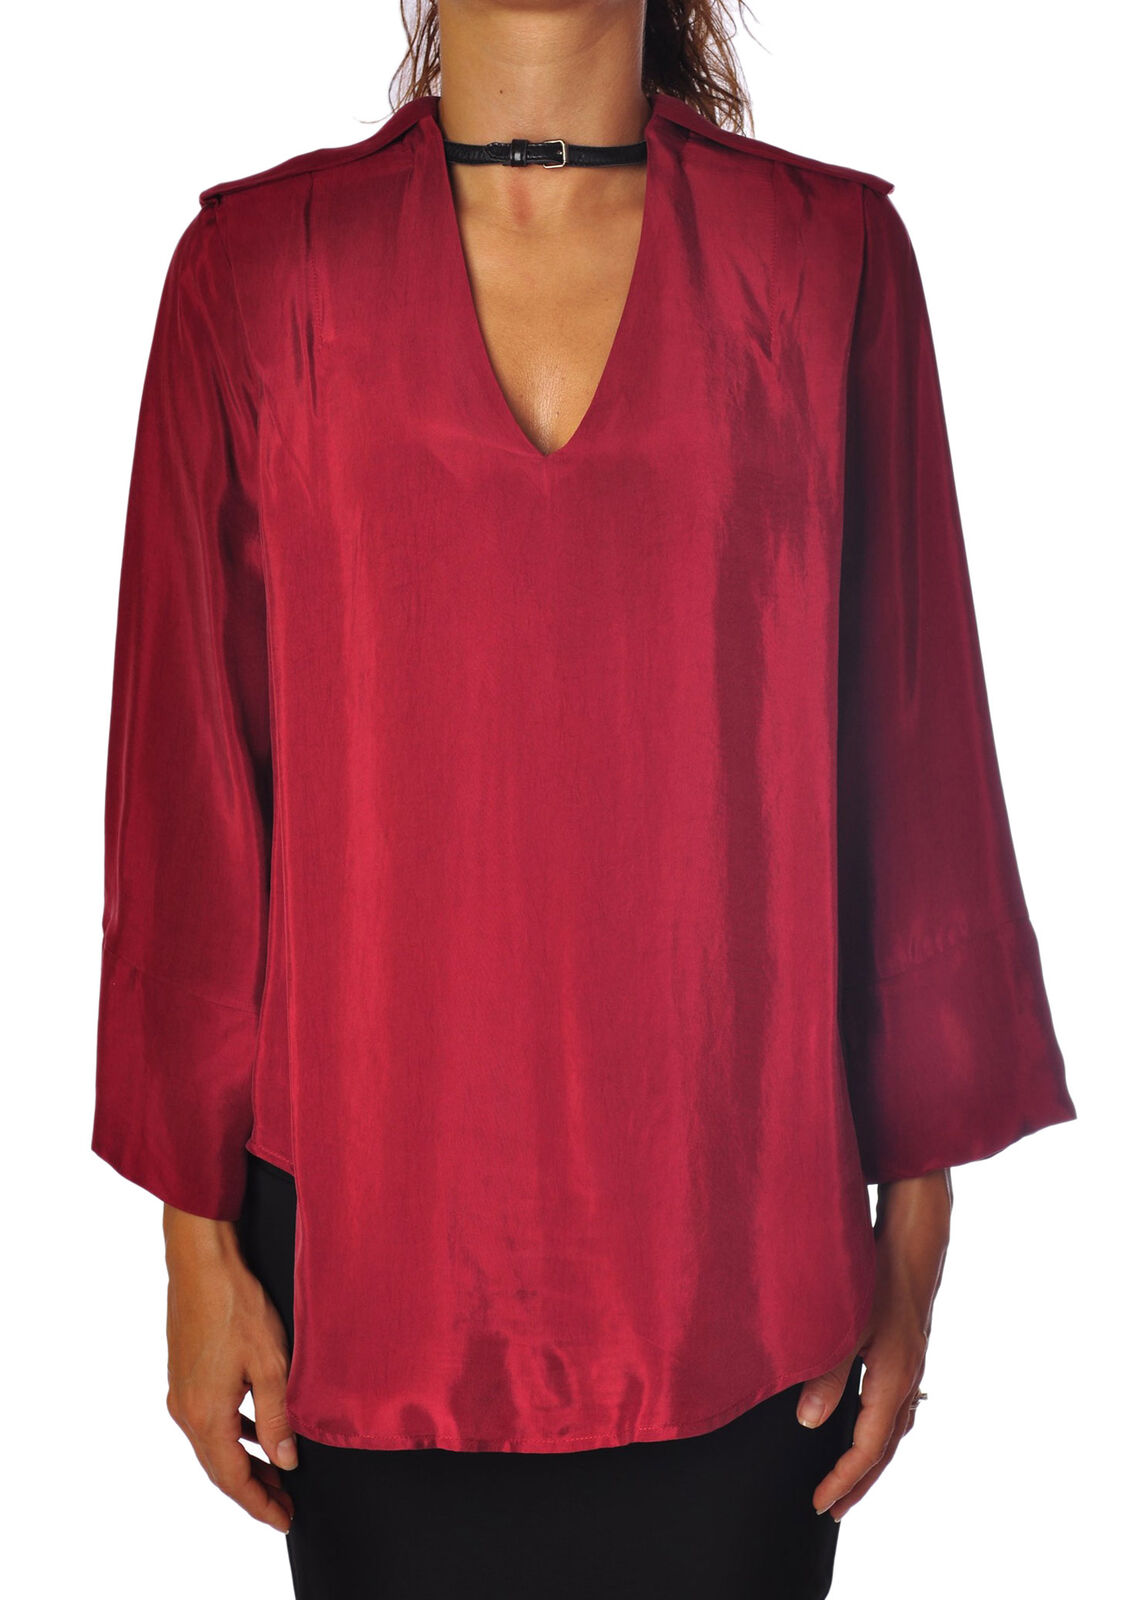 8pm  -  Blouses - Female - ROT - 116424A183900